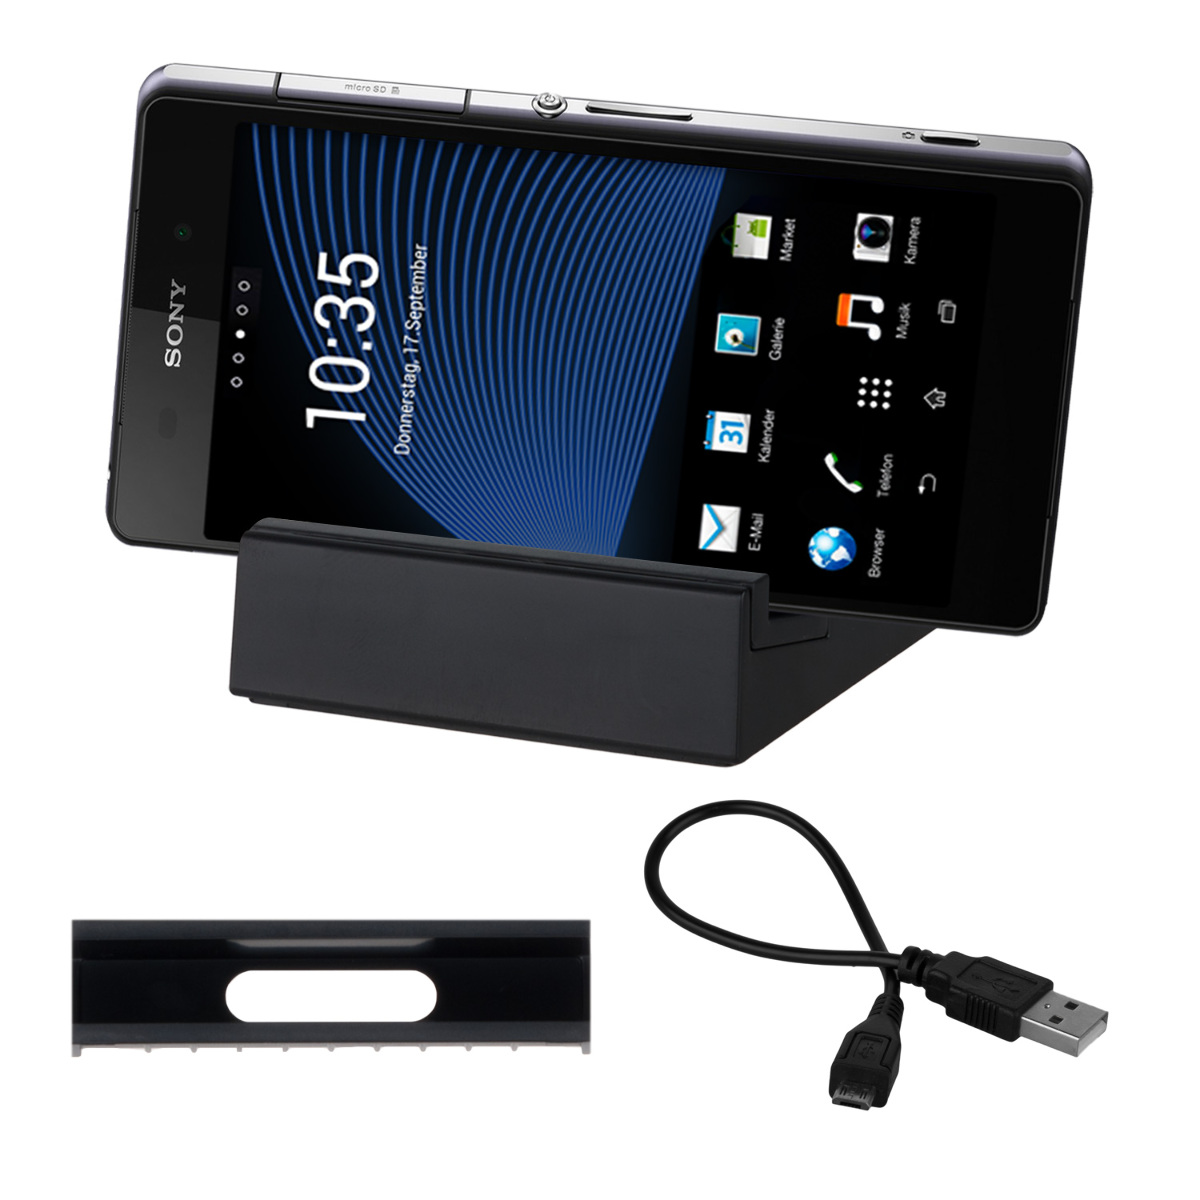 kwmobile-MAGNET-DOCKING-STATION-FUR-SONY-XPERIA-Z2-SCHWARZ-UNIVERSAL-DOCK-KABEL